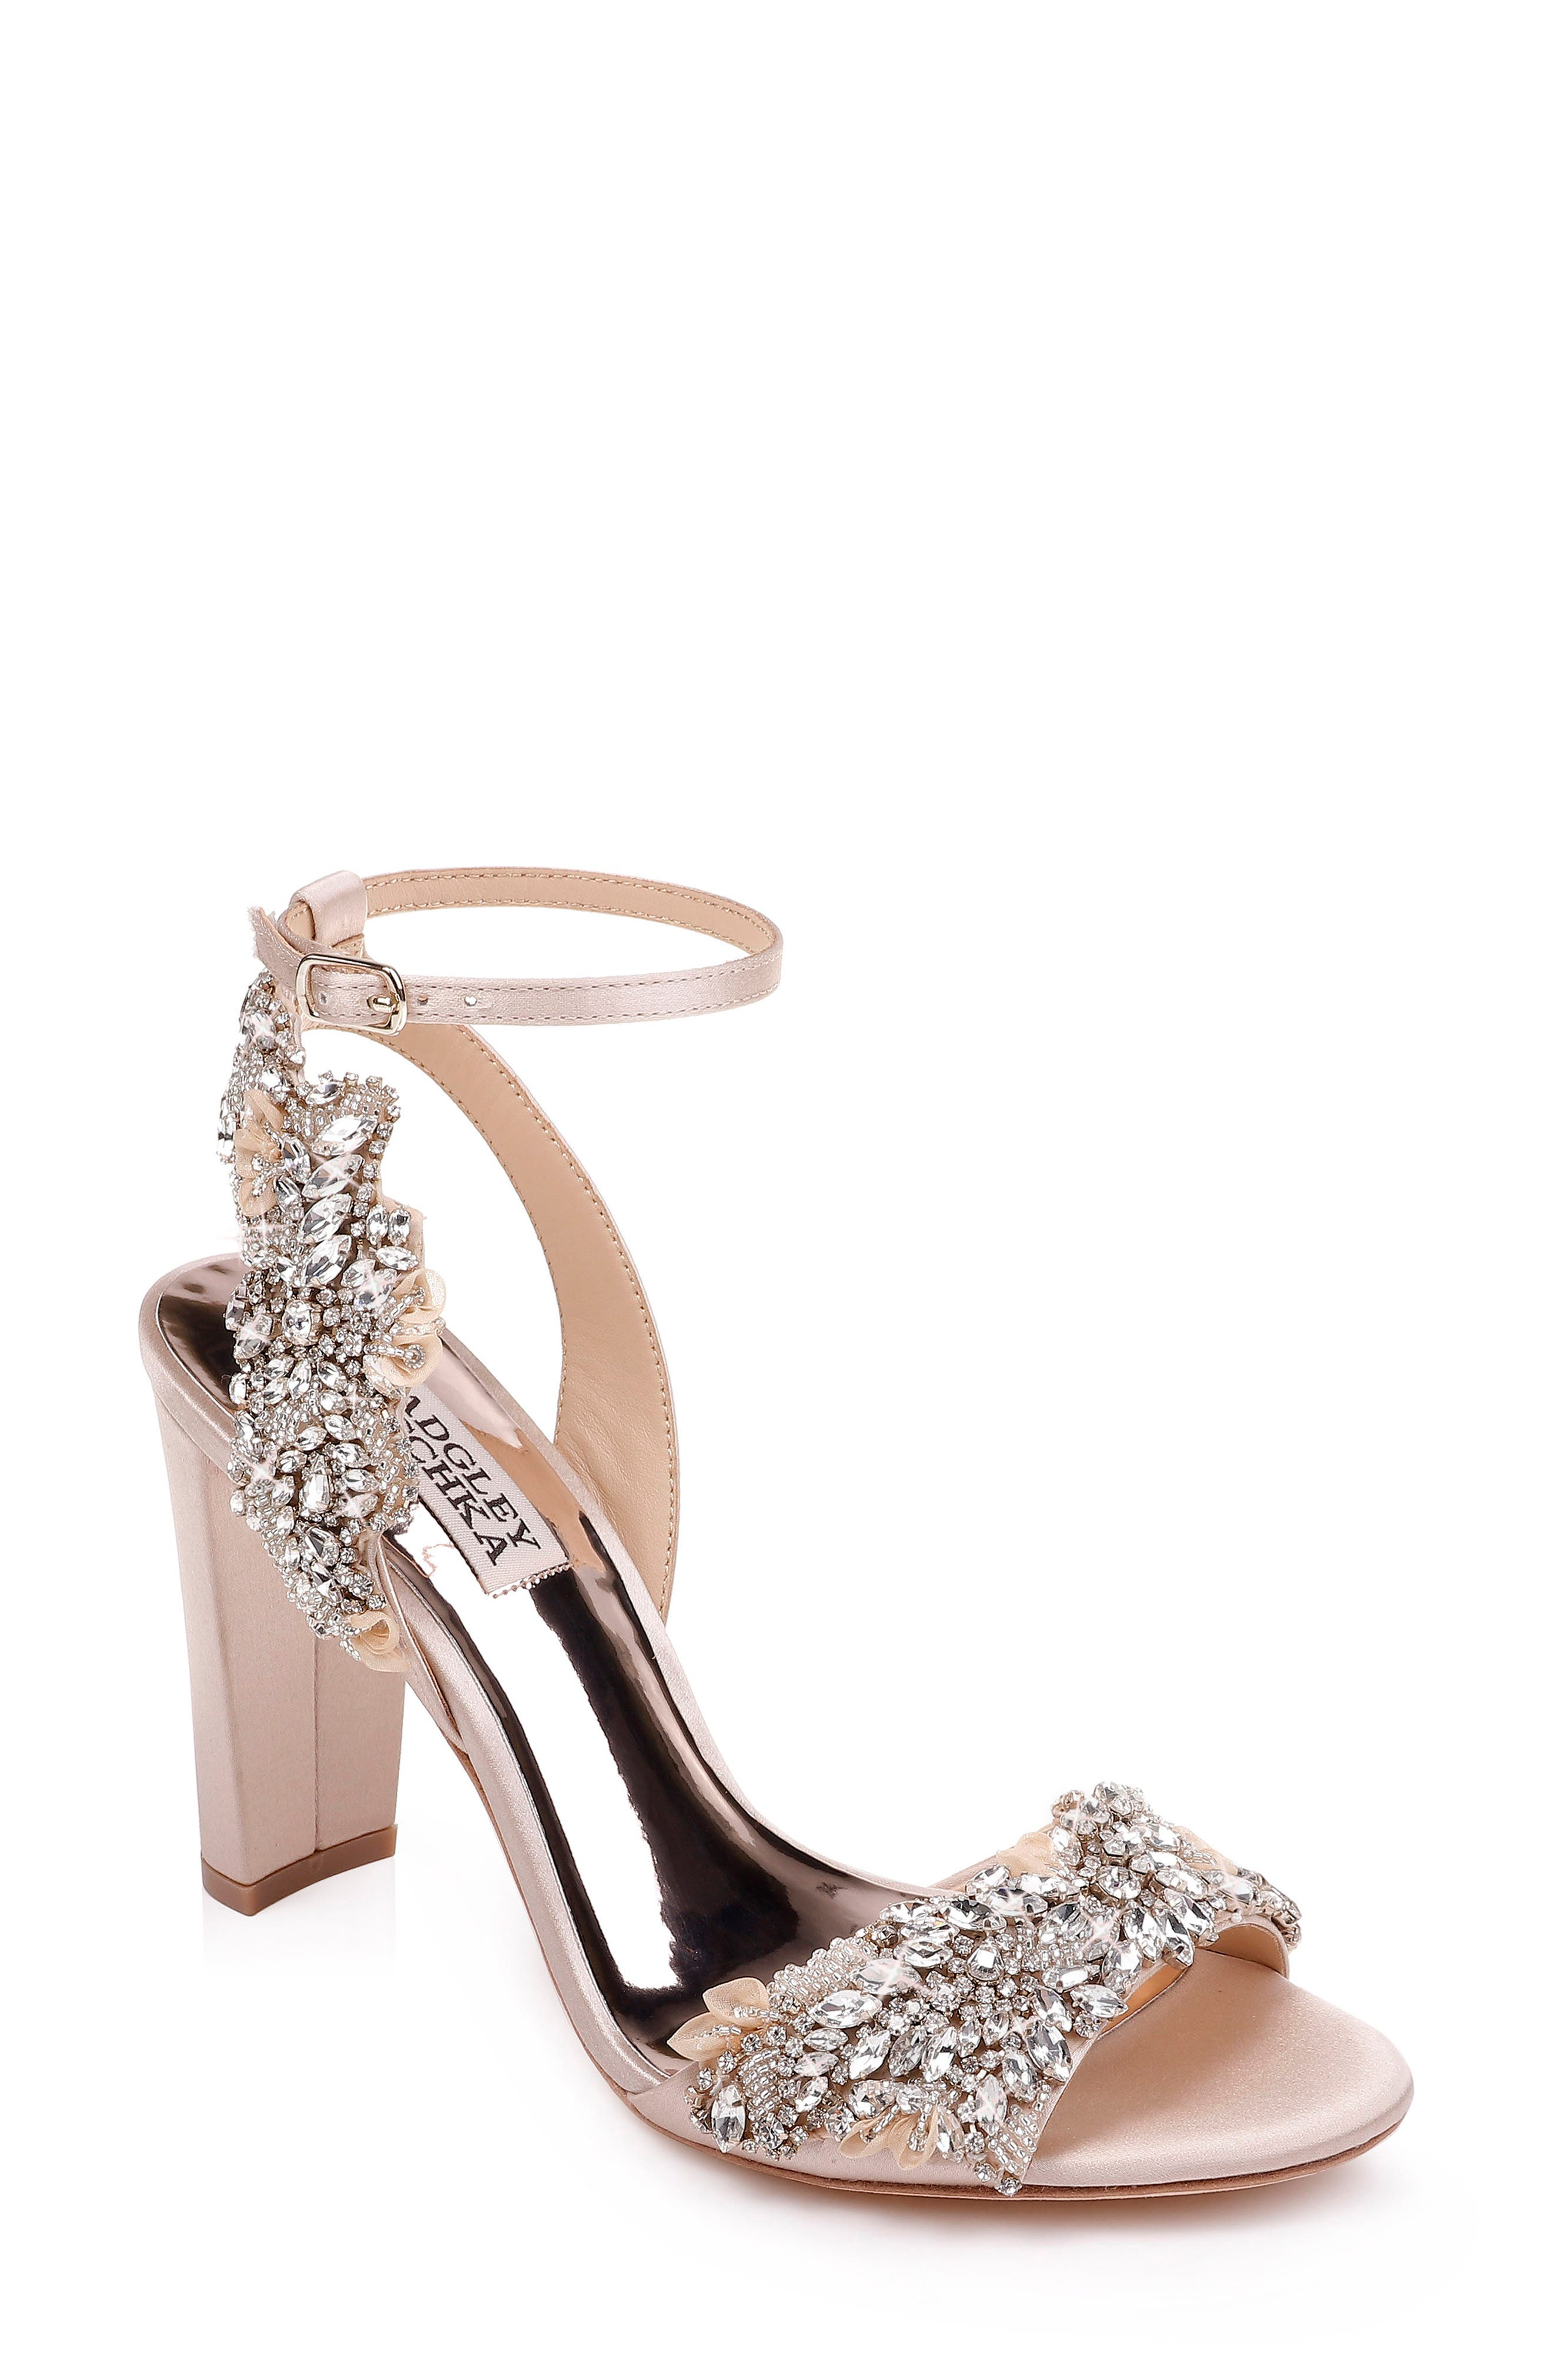 Sparkling crystal embellishments dazzle on the straps of a block-heel sandal covered in lustrous satin. Style Name: Badgley Mischka Libby Ankle Strap Sandal (Women). Style Number: 5794766. Available in stores.